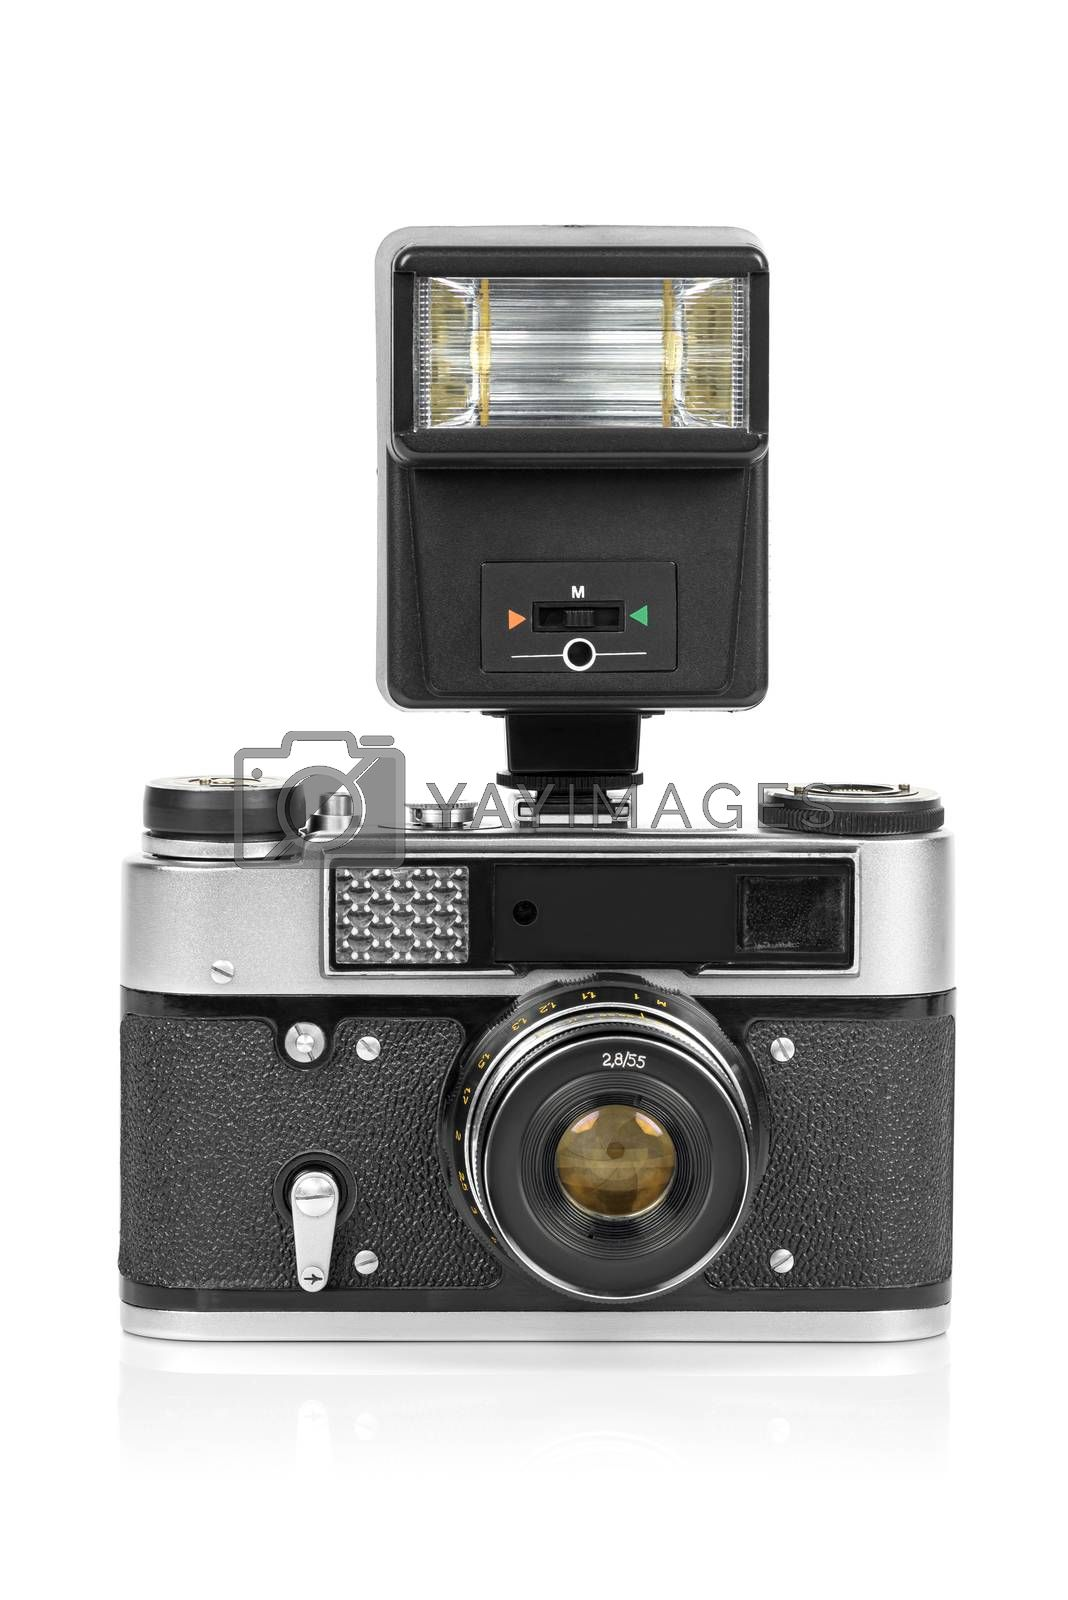 Vintage analog camera with manual flash light isolated on white background with clippinng path